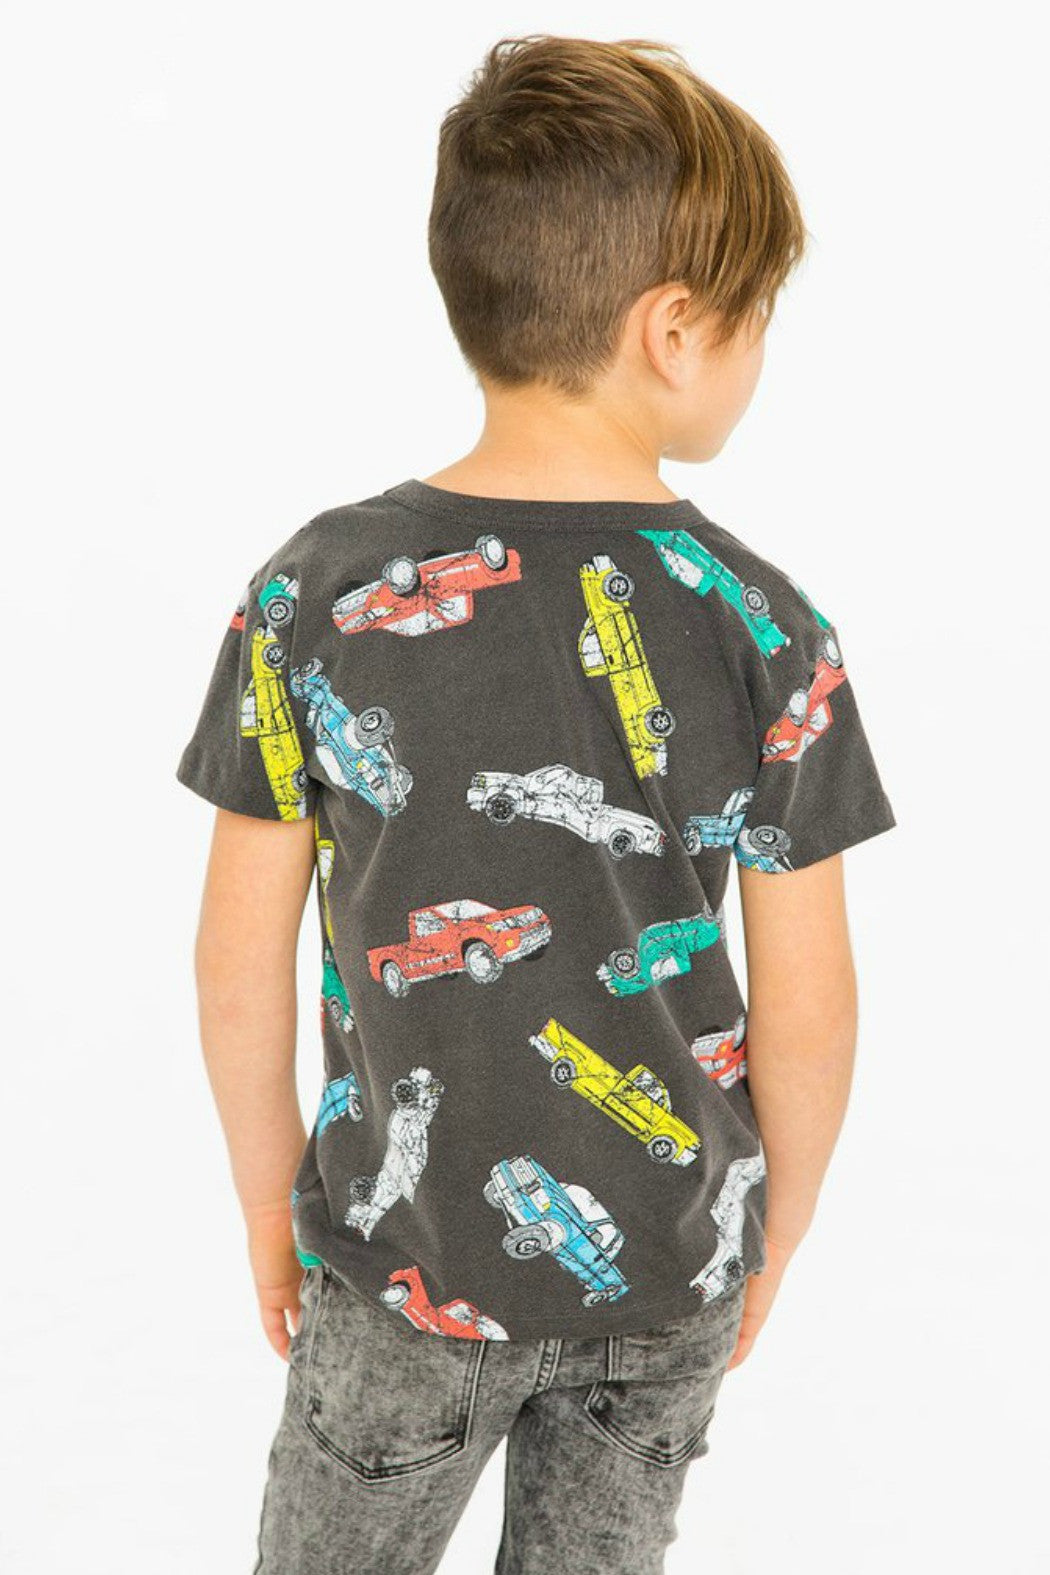 Chaser Kids - Traffic jam - R+D Hipster Emporium | Womens & Mens Clothing - 2